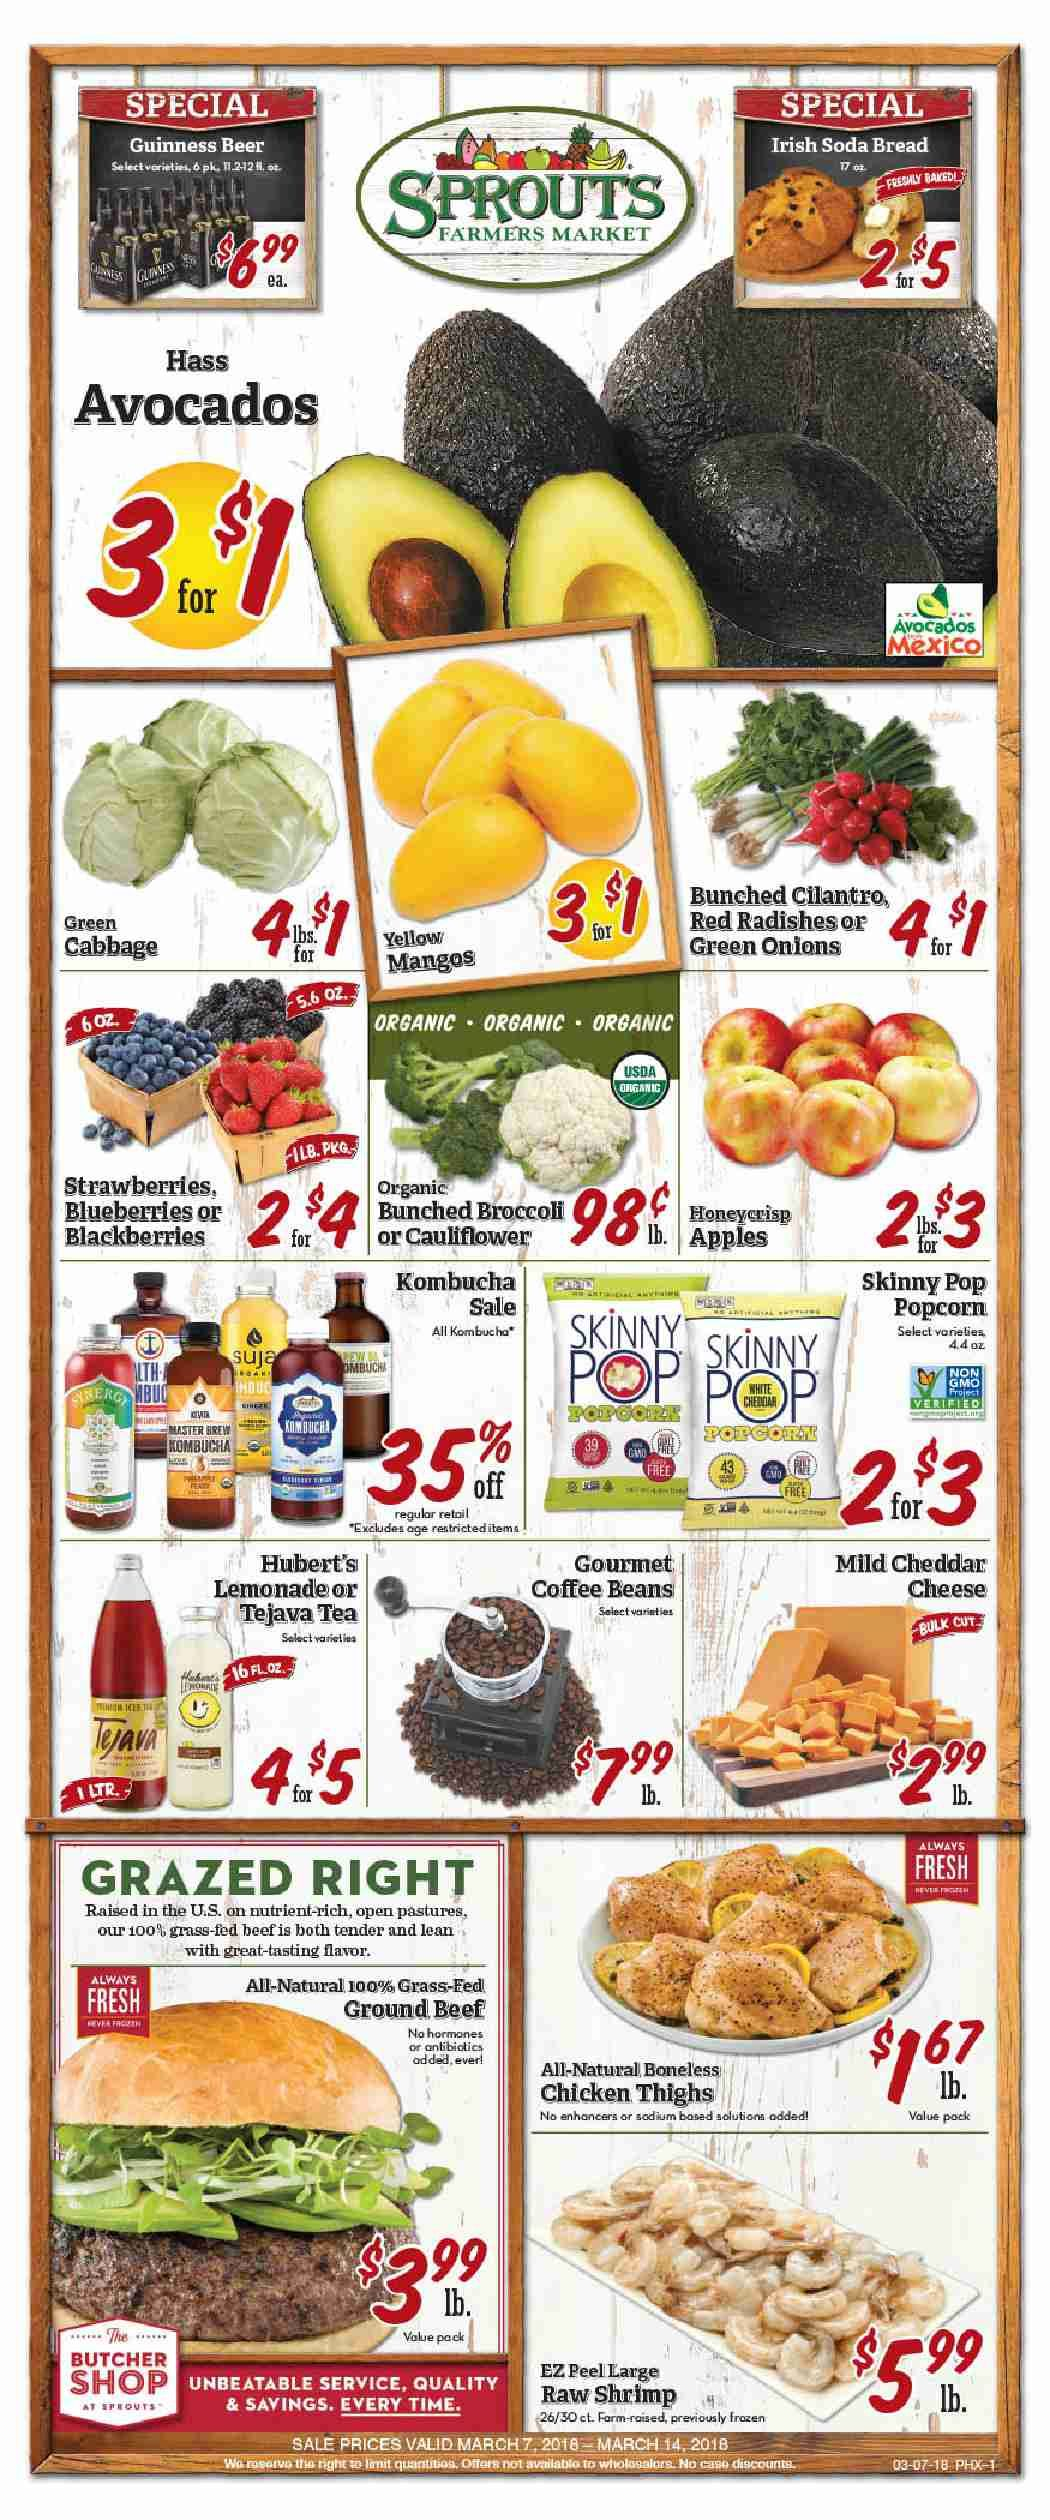 Sprouts Weekly ad Flyer July 10 - 17, 2019 | Weekly Ad Circulars